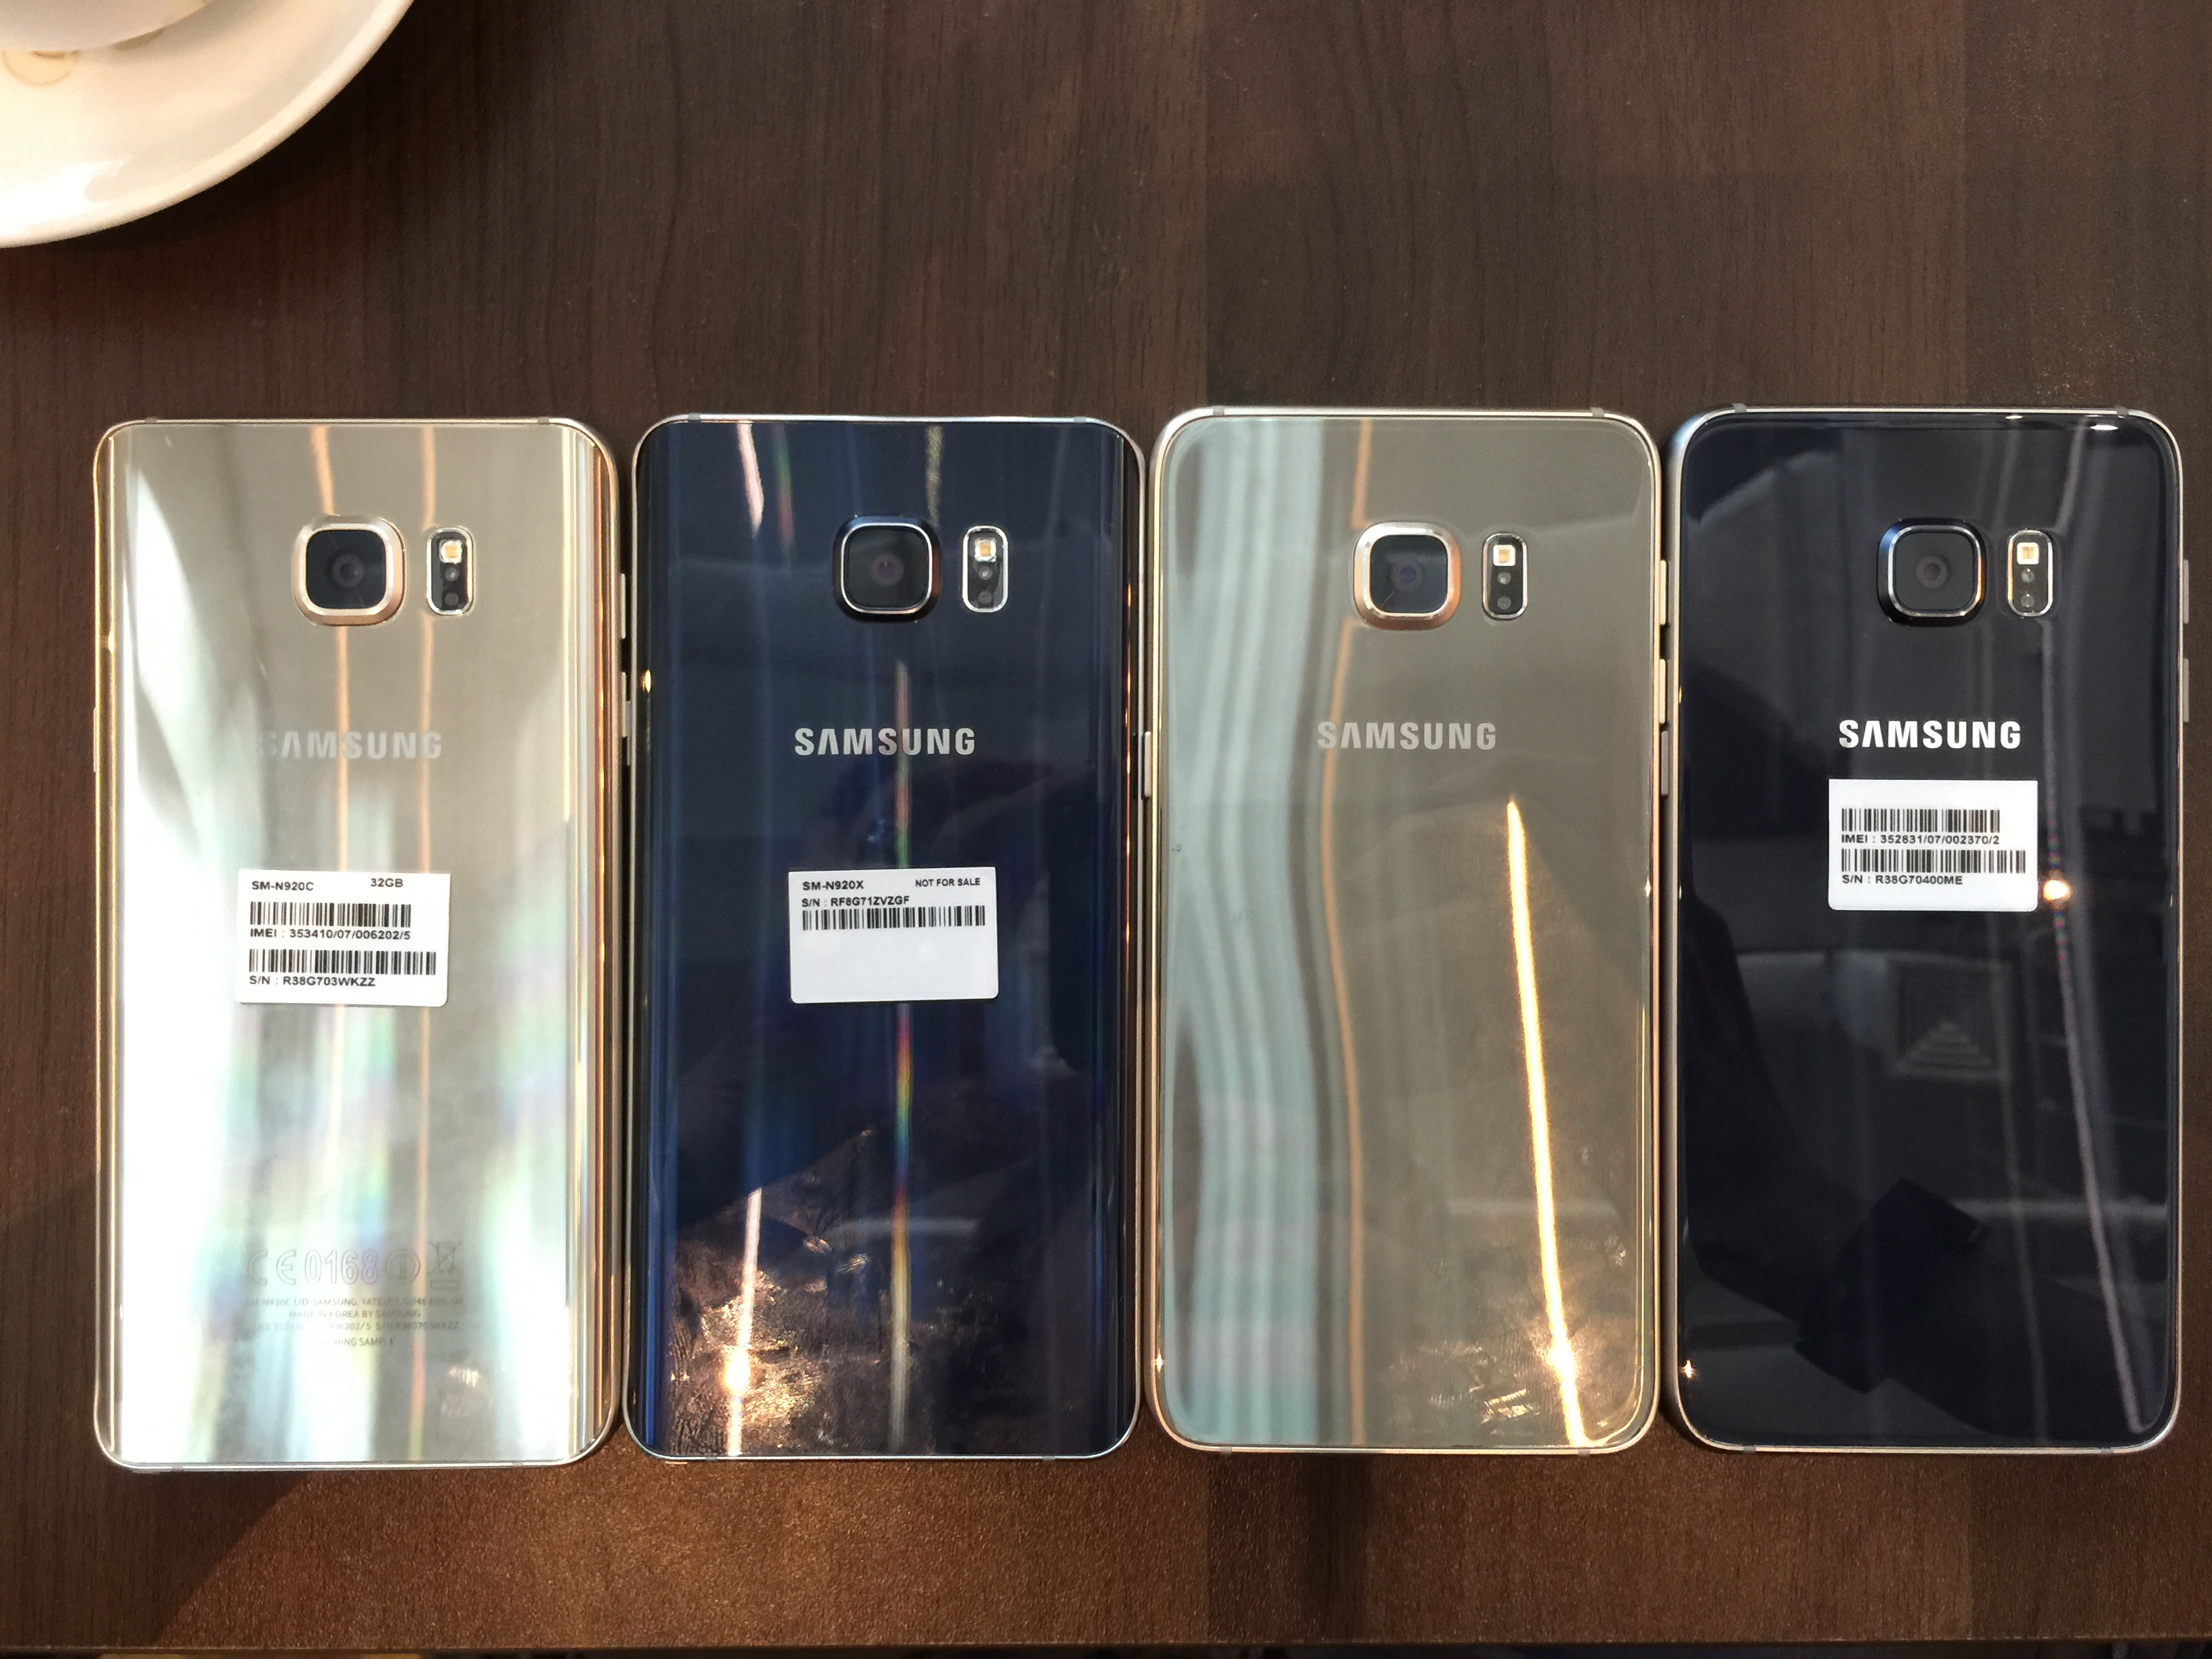 Gold platinum galaxy note 5 now available from t mobile android - Samsung Galaxy Note 5 S6 Edge Black Sapphire Gold Platinum